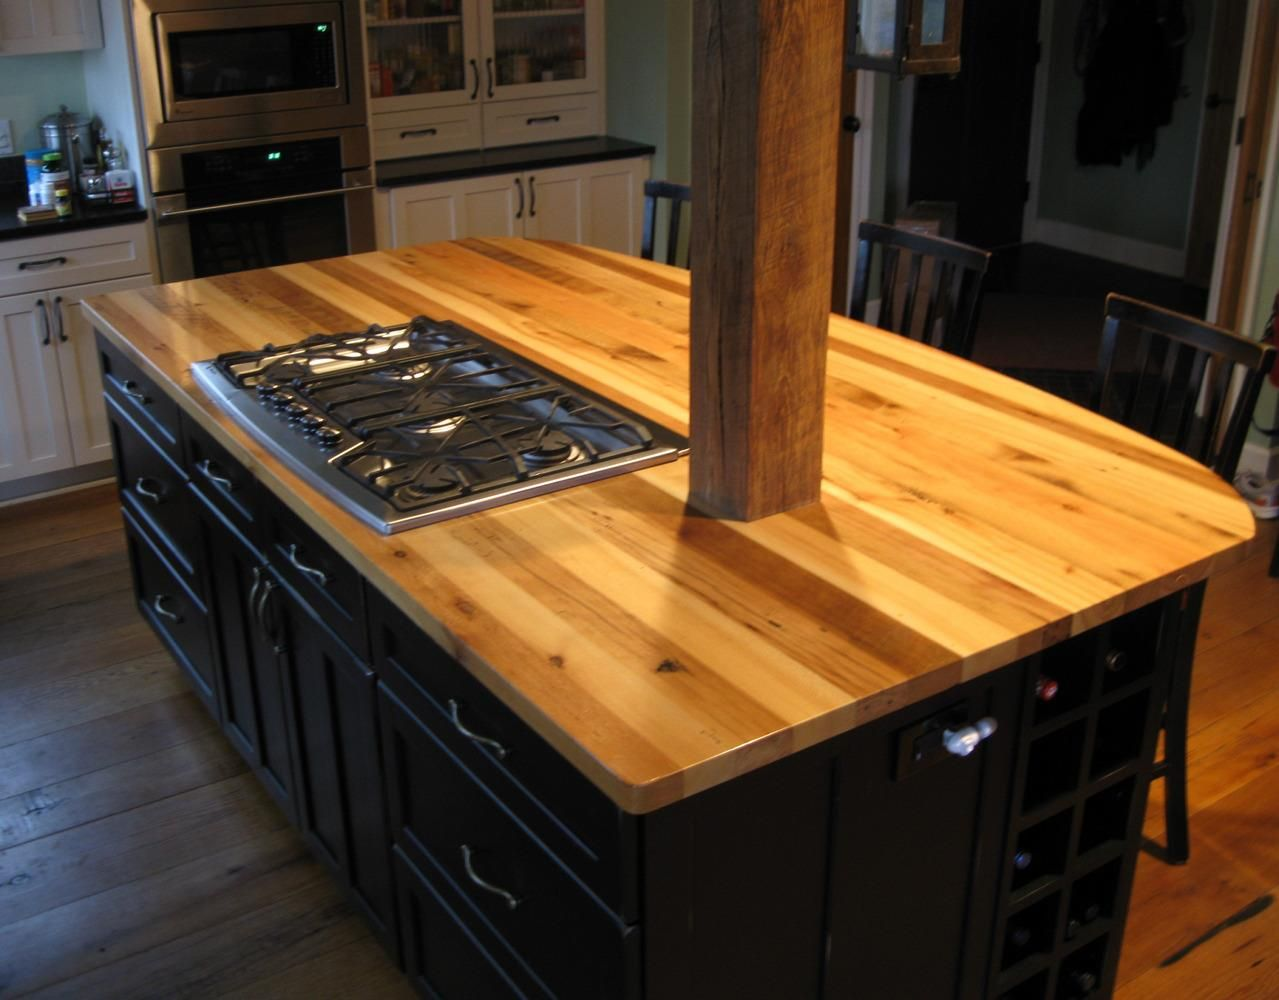 Michele S Kitchen Island Is Topped With American Gothic Reclaimed Mixed Hardwoods